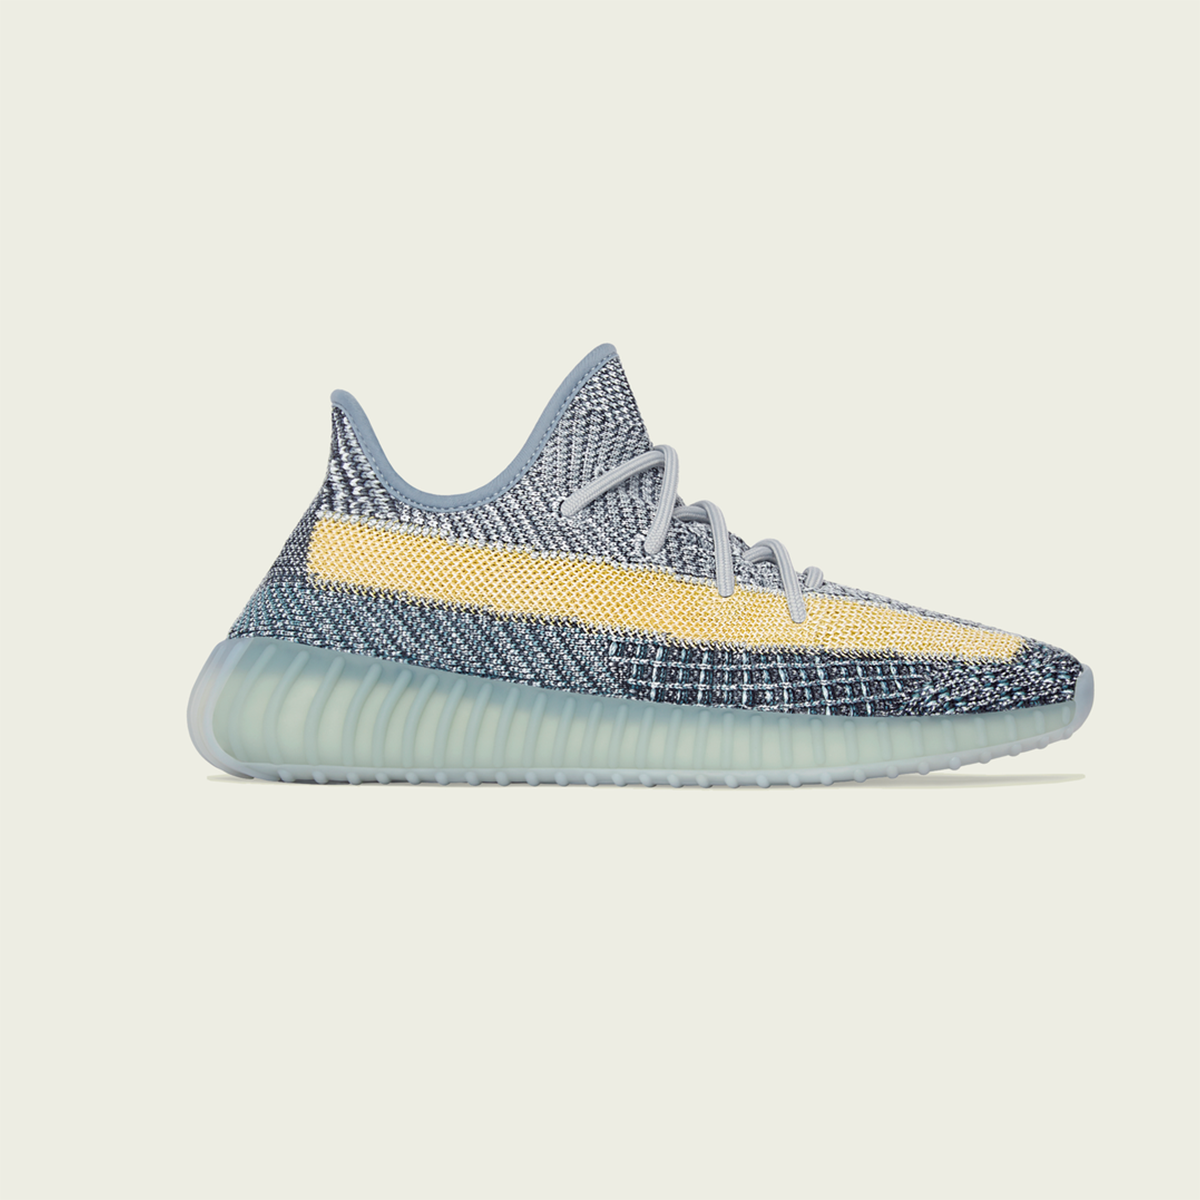 Yeezy Boost 350 V2 GY7657